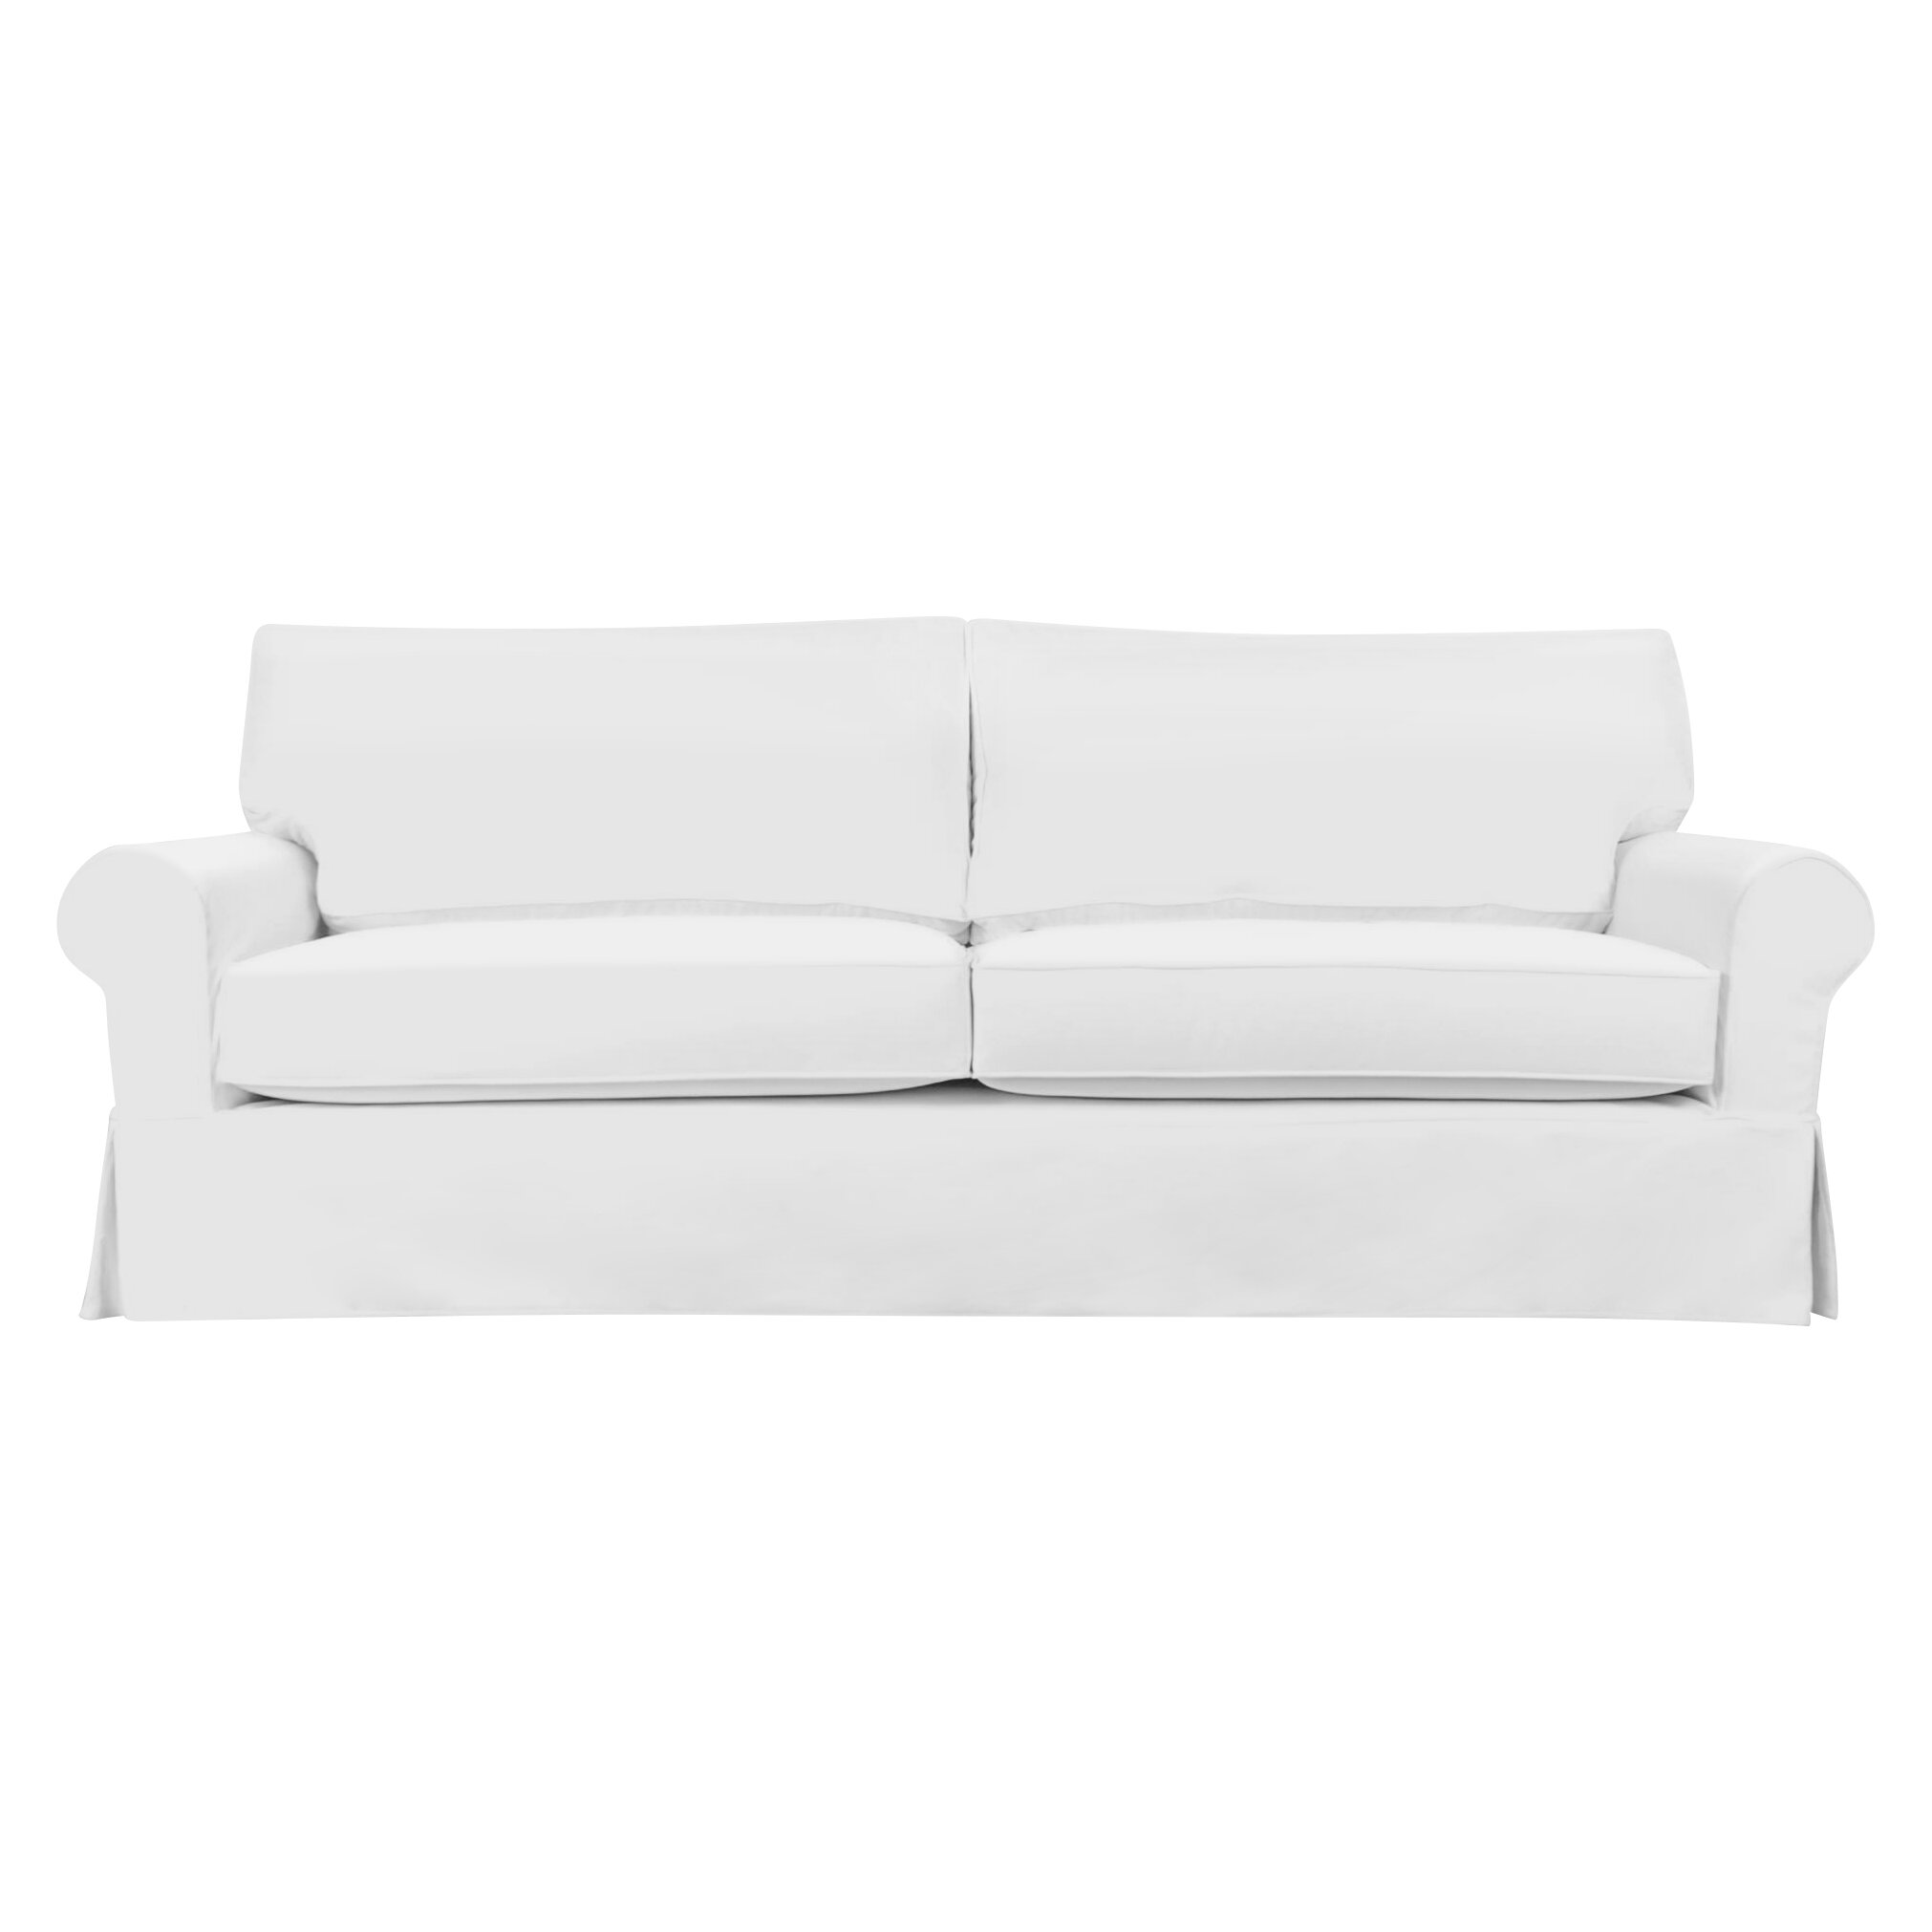 reviews of ektorp sofa Sofa Hpricot